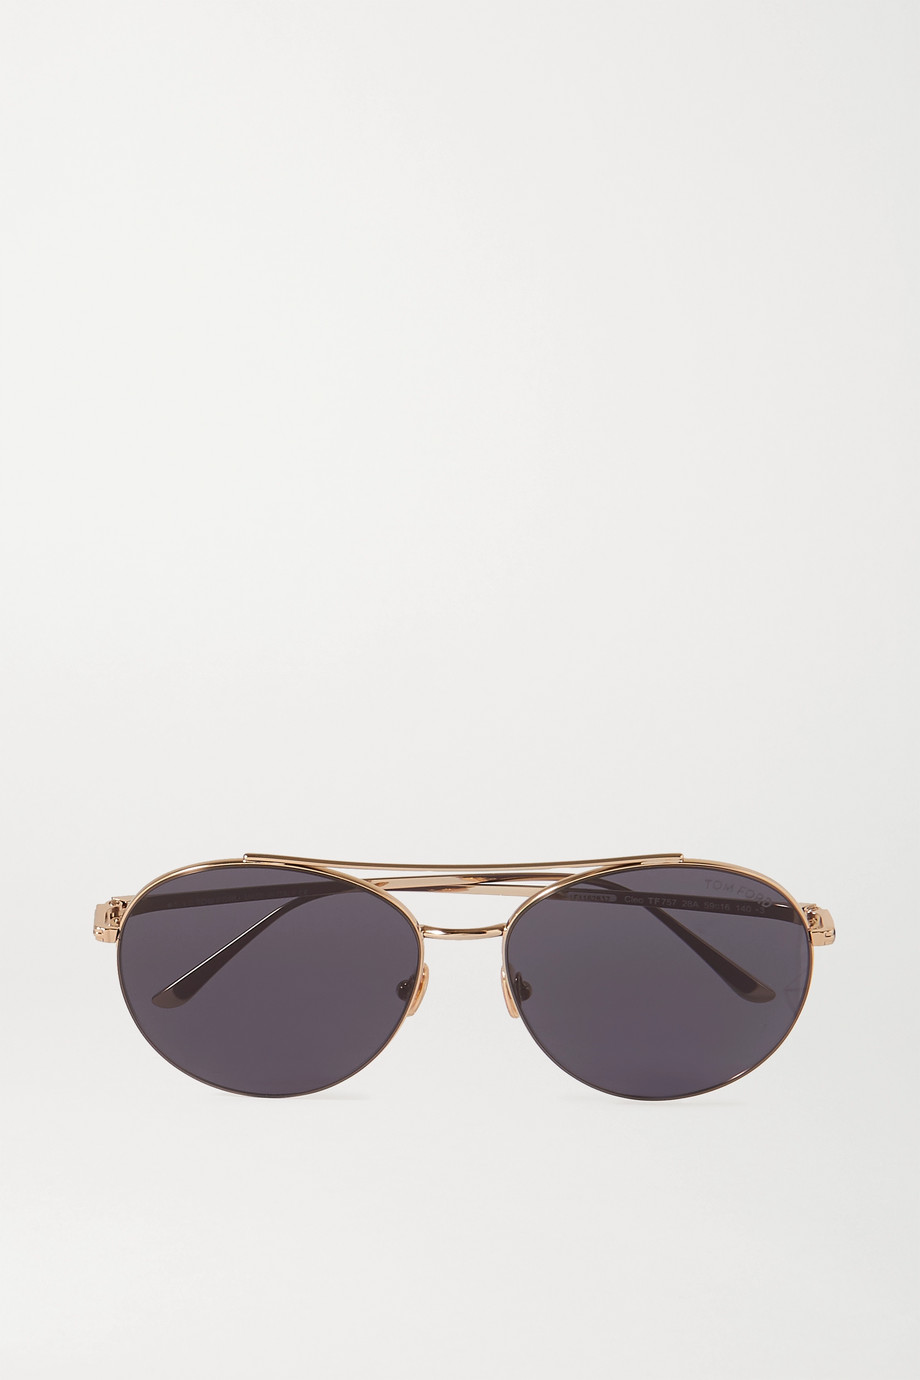 TOM FORD Pilotensonnenbrille in Roségold